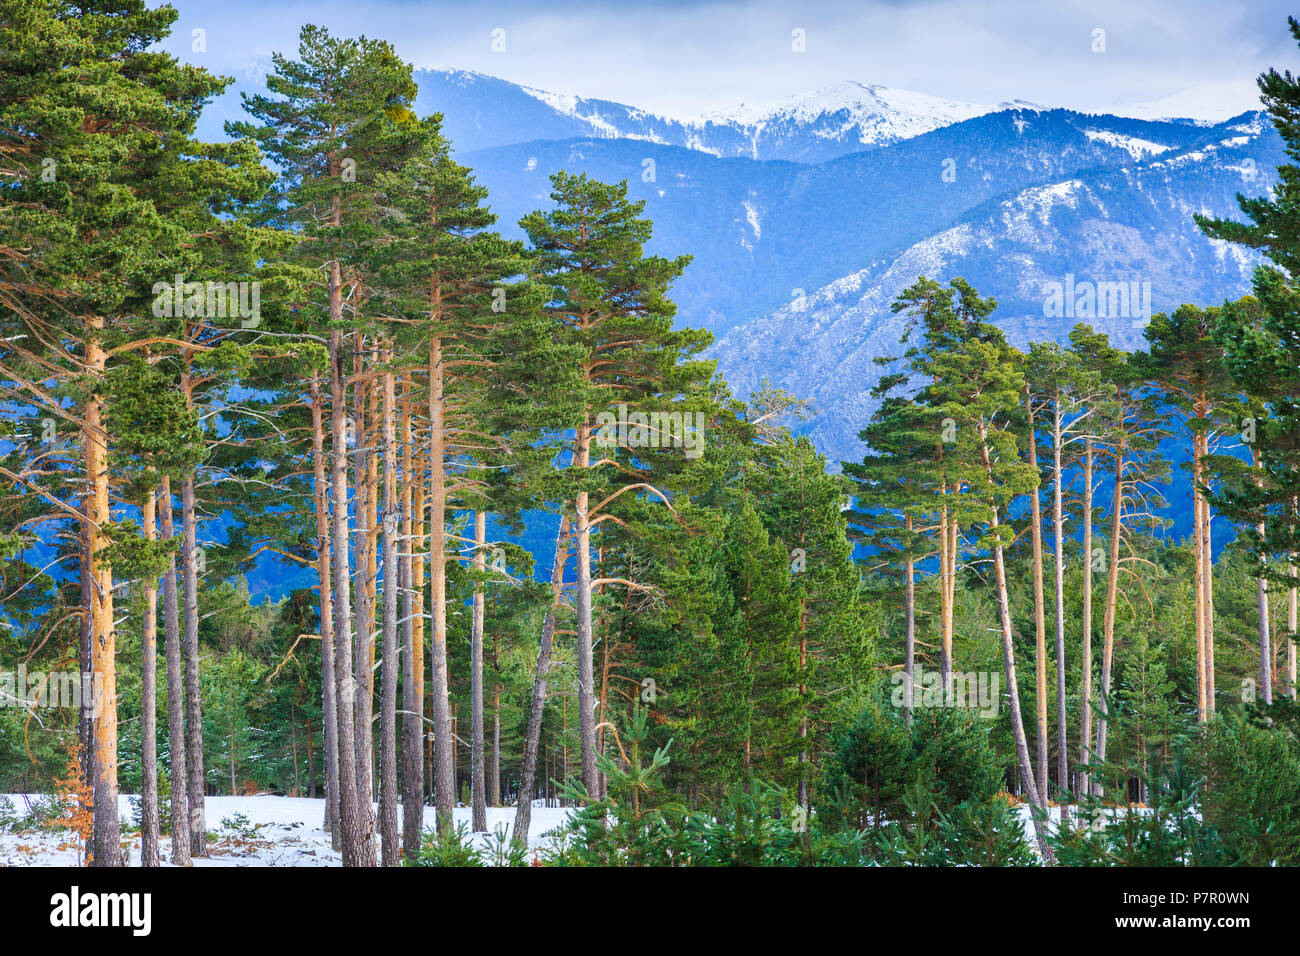 Pine grove and mountains. - Stock Image